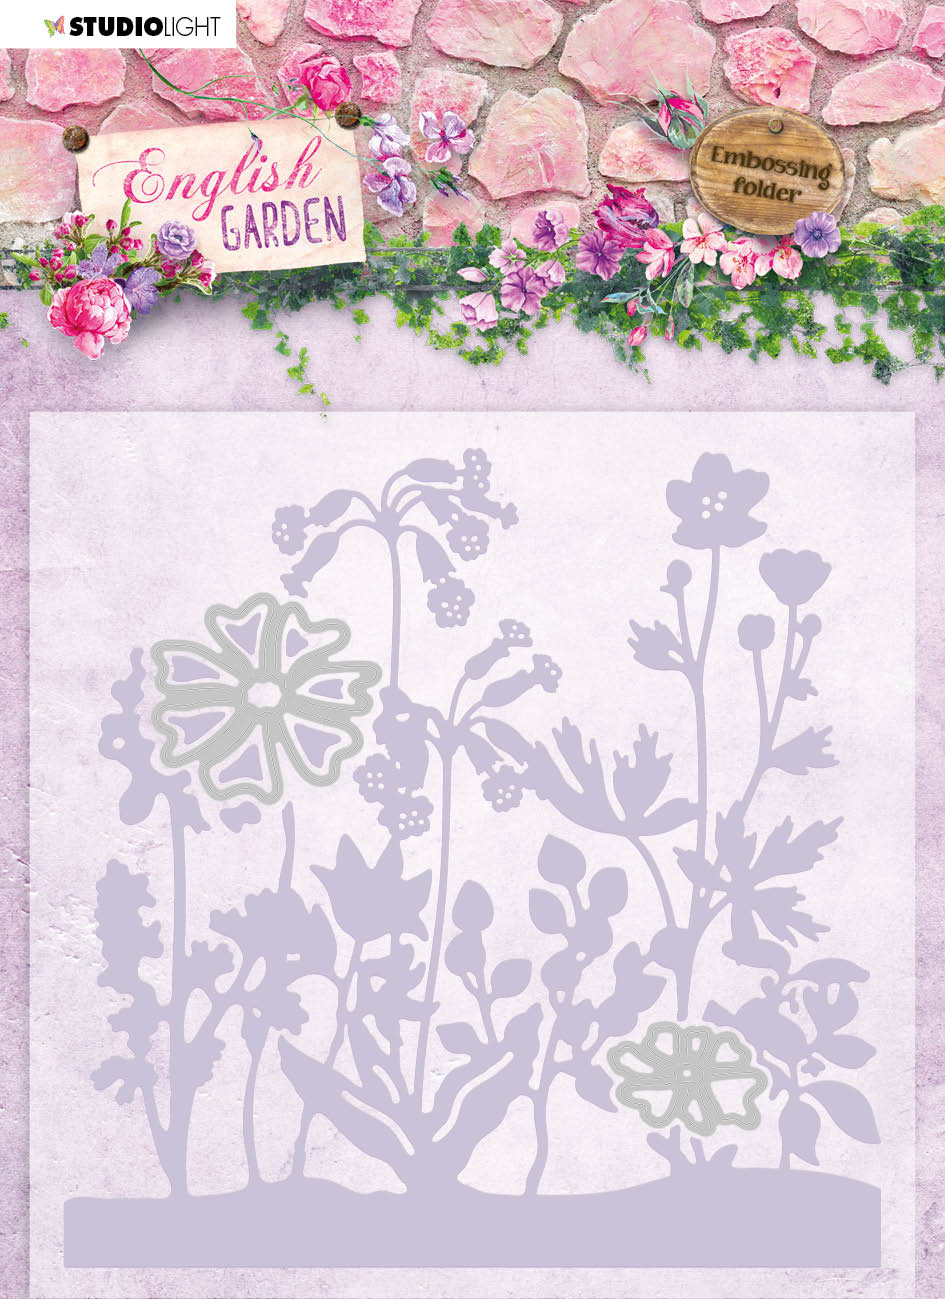 Studiolight Embossing Folder With Die Cut, English Garden nr.04